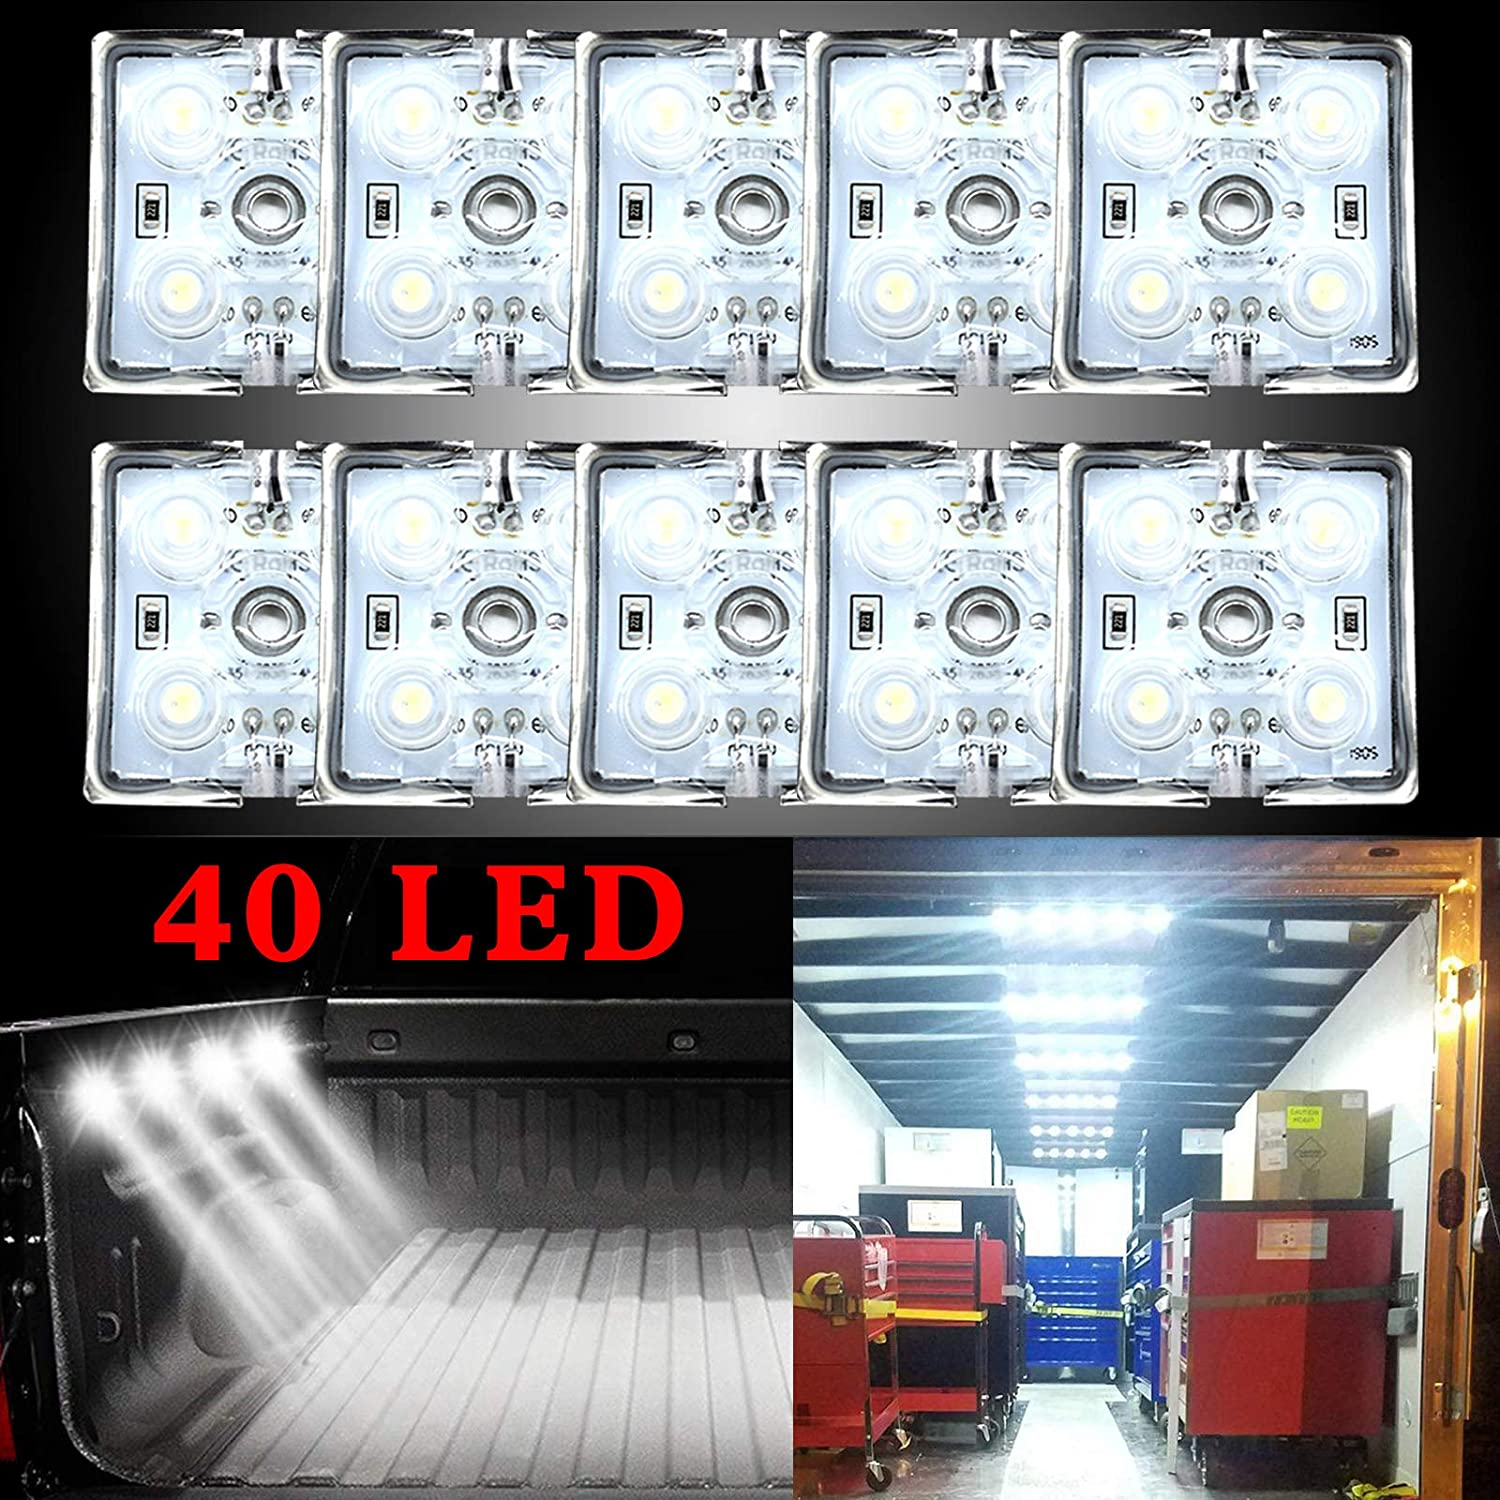 Ruesious 40 Led Auto Innenraumbeleutung Lampe Interior Licht 10x4 Leseleuchte Led Panel Kits Weiß 12v Auto